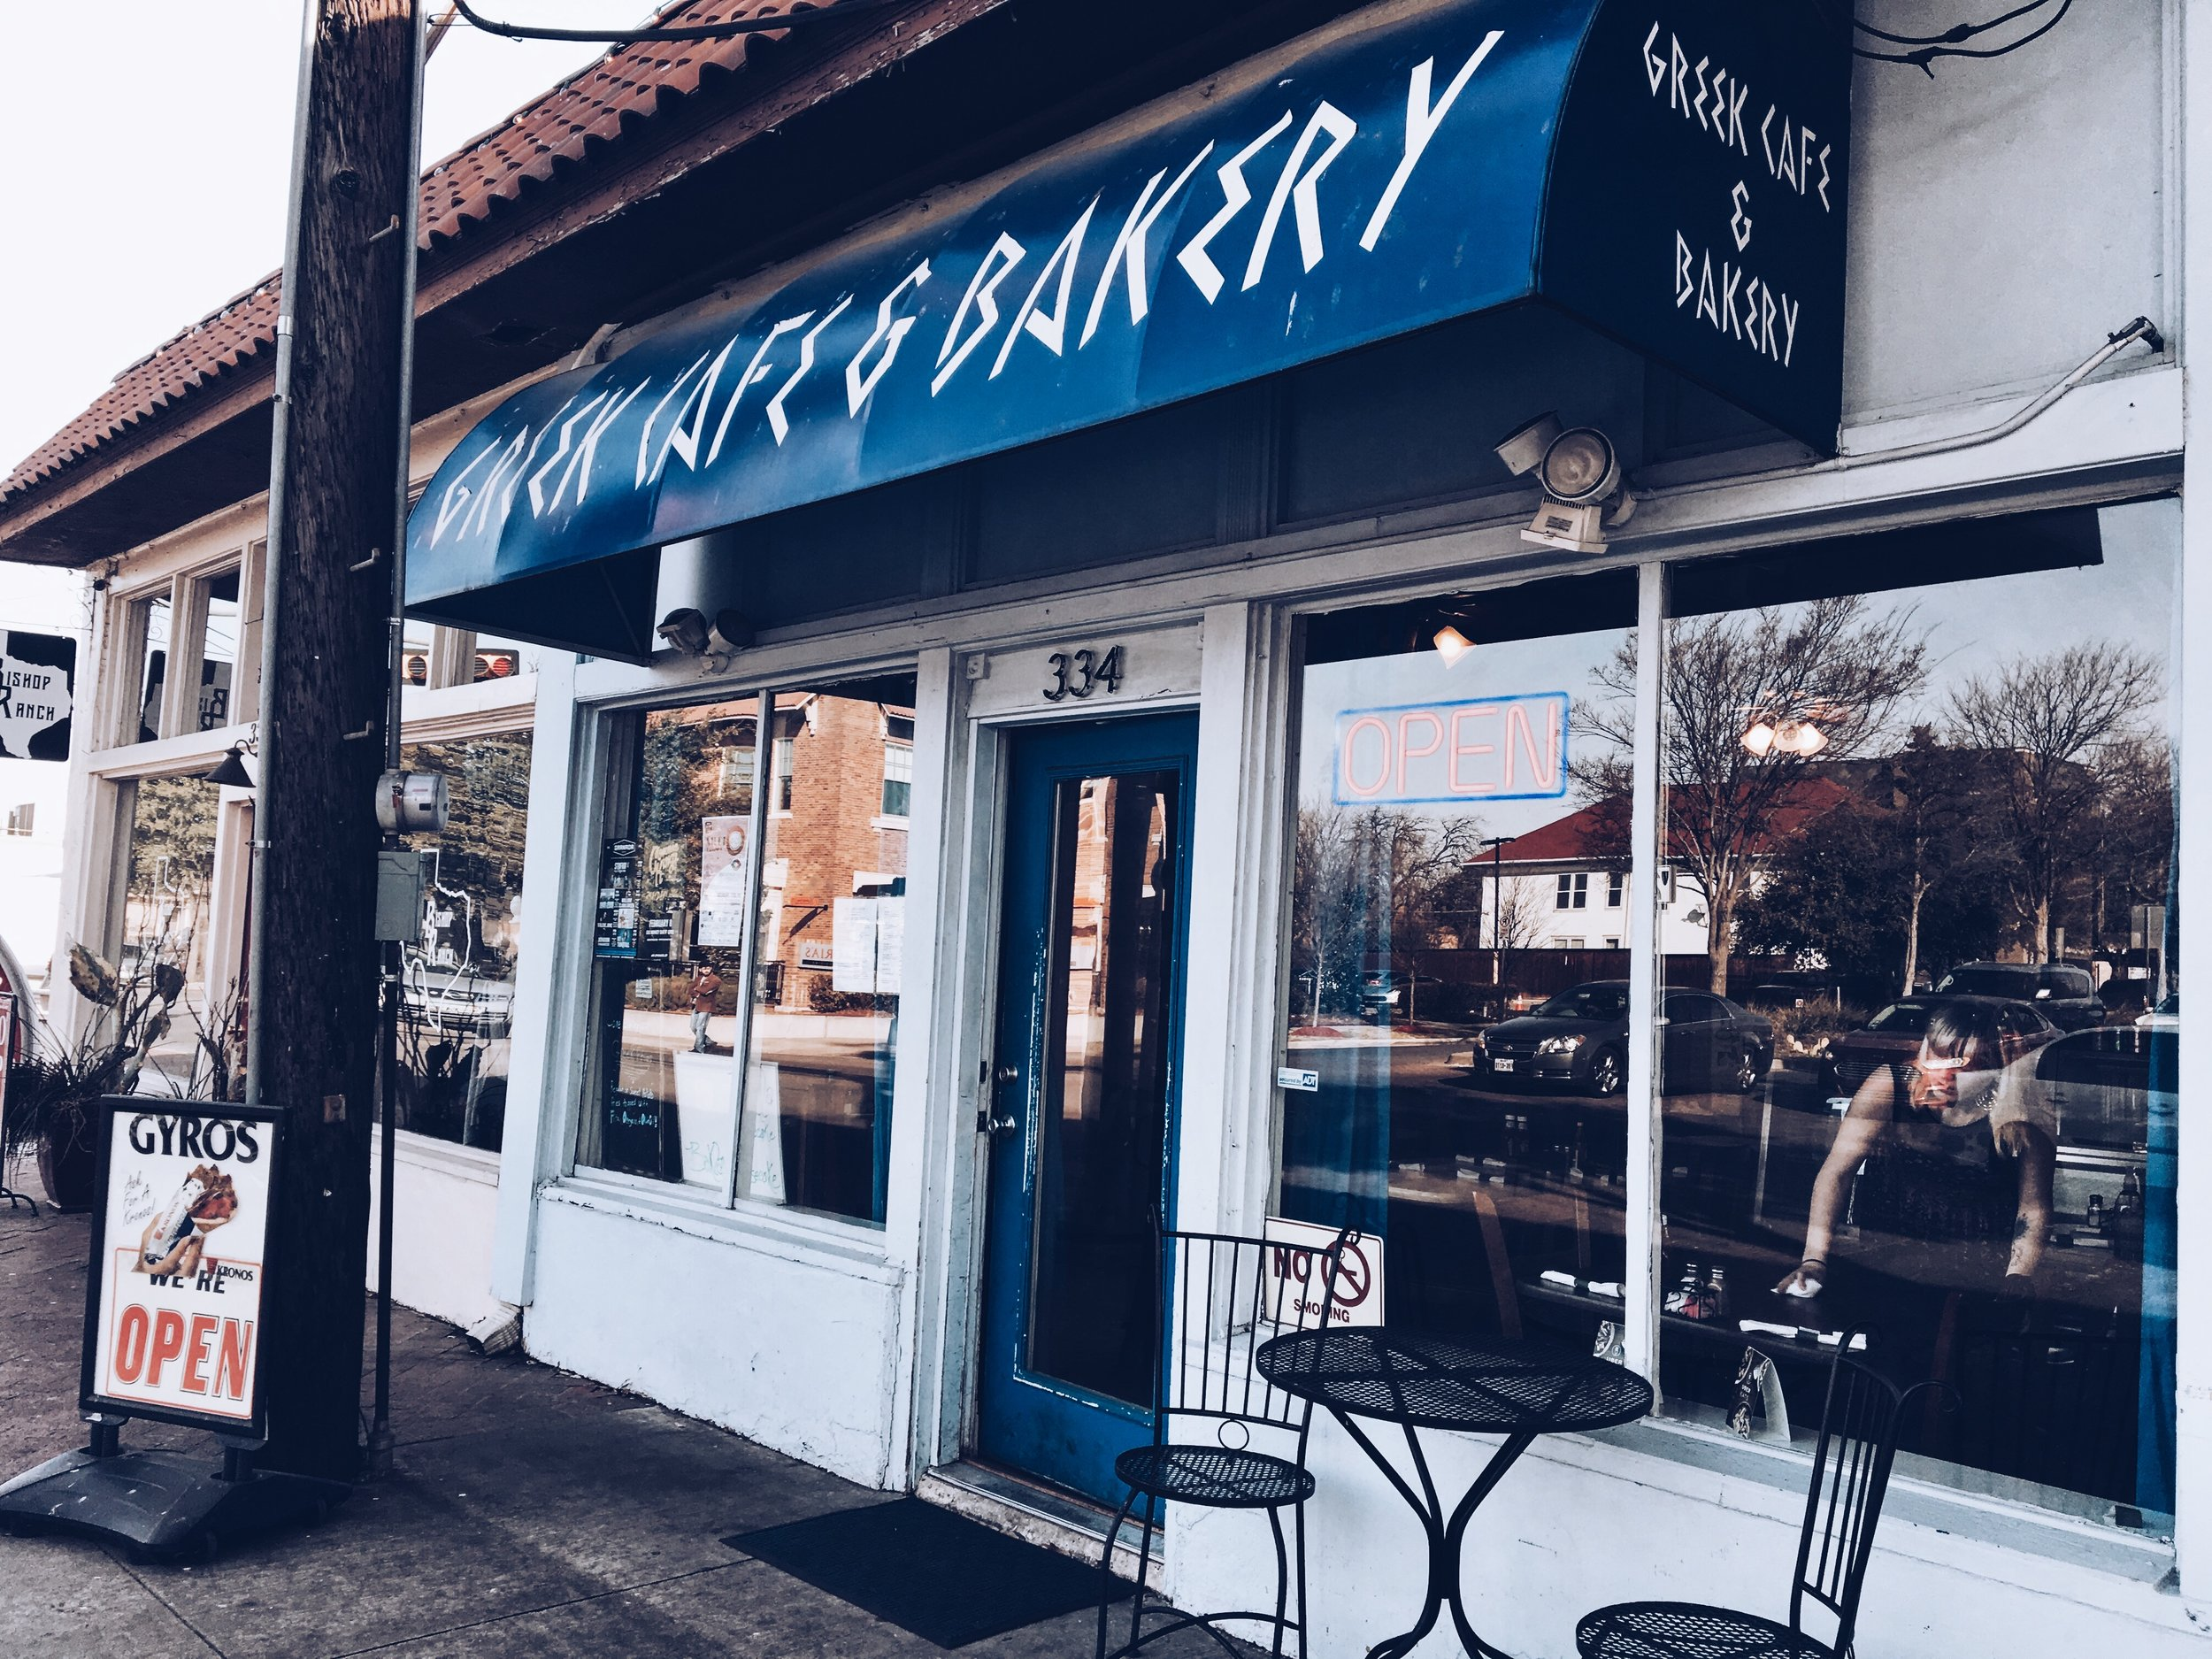 Where I'm eating: Greek Cafe & Bakery